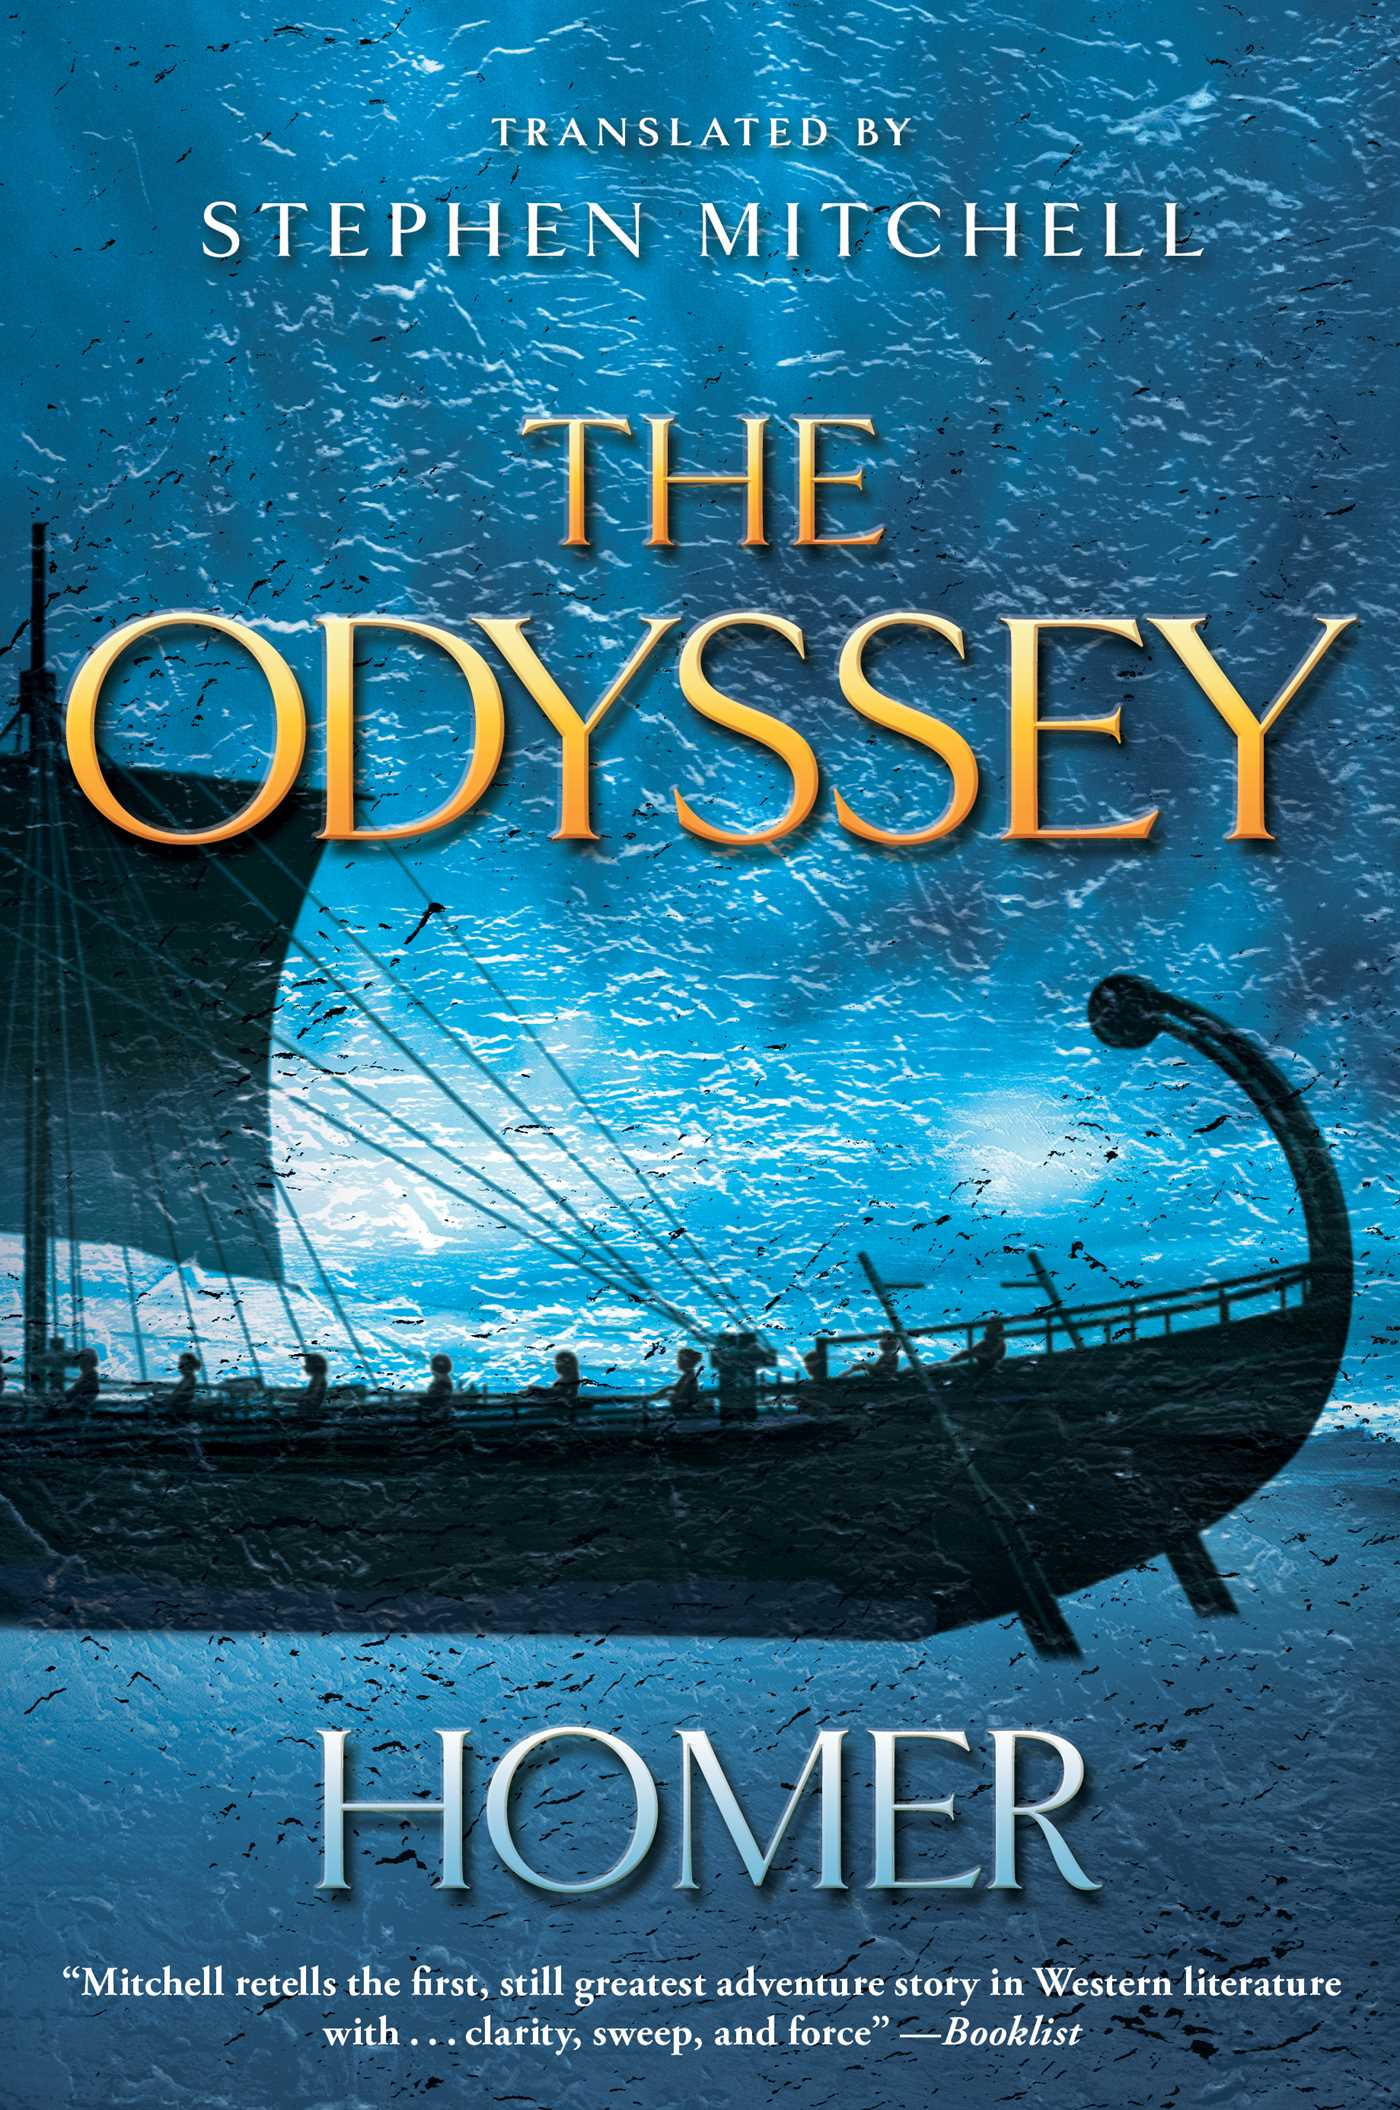 The Odyssey  Book By Homer Stephen Mitchell  Official Publisher  Book Cover Image Jpg The Odyssey What Is A Thesis Of An Essay also High School Essay Topics  Thesis Statement Example For Essays